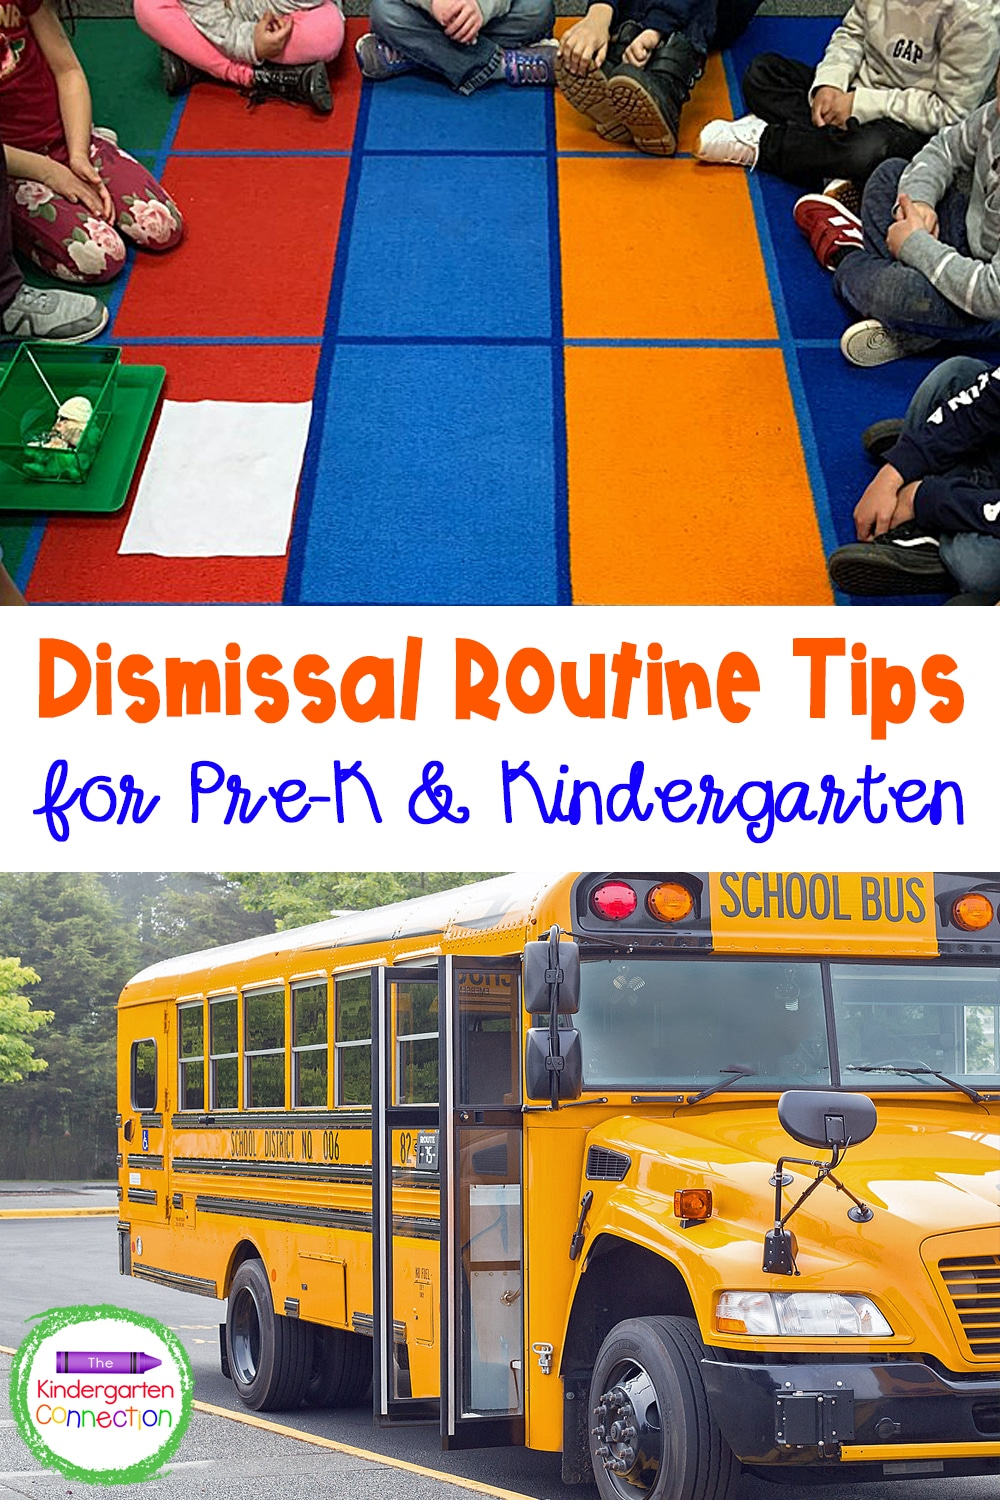 These 3 tips for Pre-K and Kindergarten dismissal routines will be sure to leave you feeling less stressed at the end of the day!